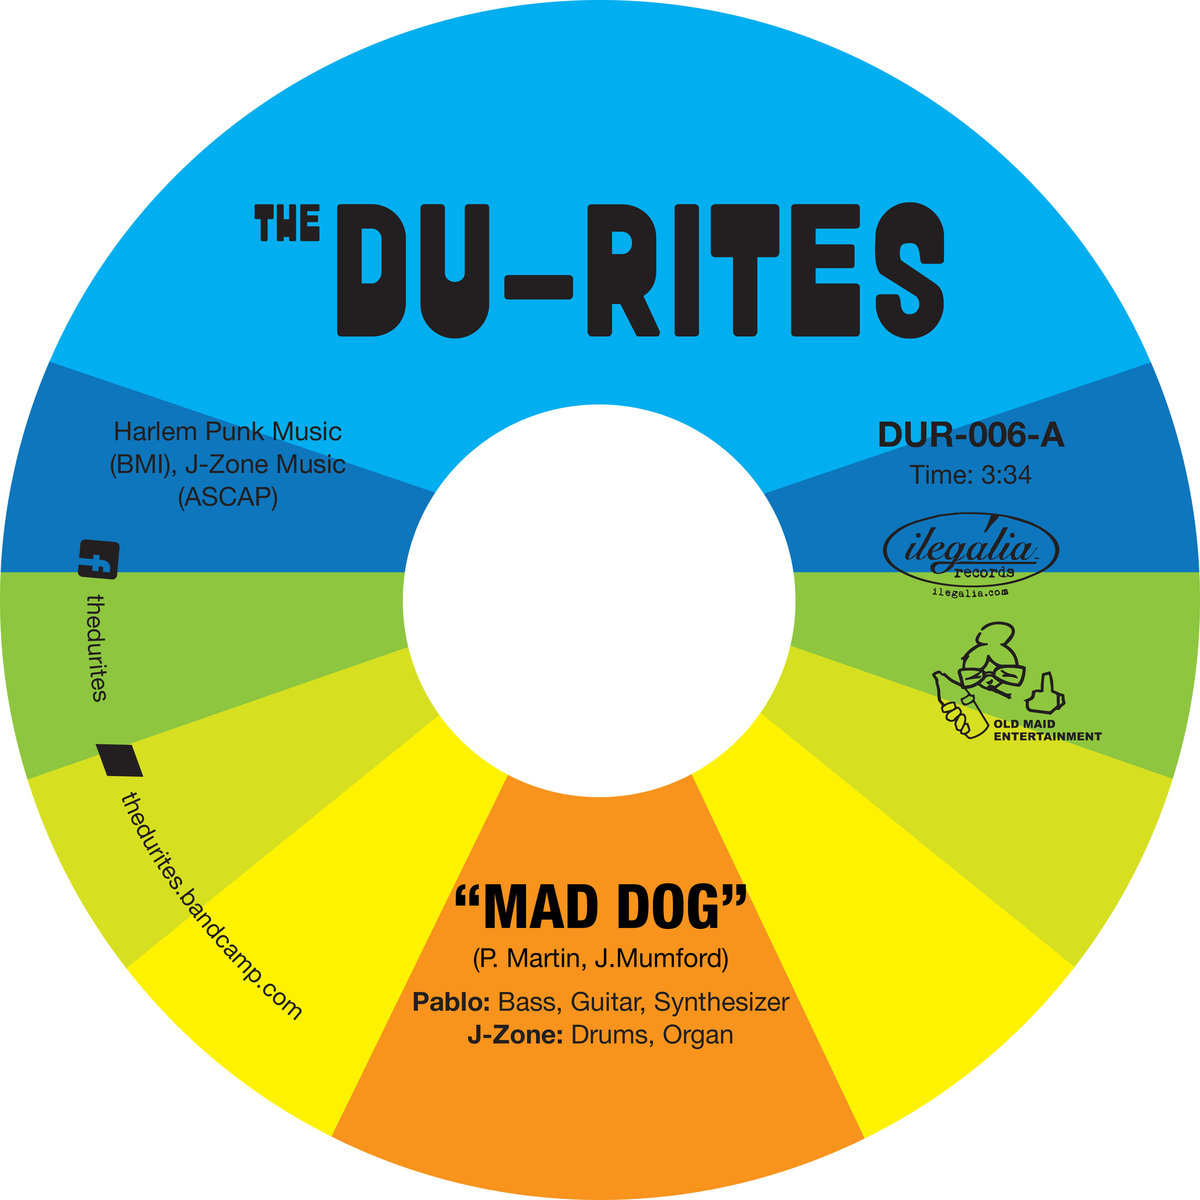 No Words #89: Dela (Tribute to Outkast), The Du-Rites, Gardna, Amerigo Gazaway x Xiomara